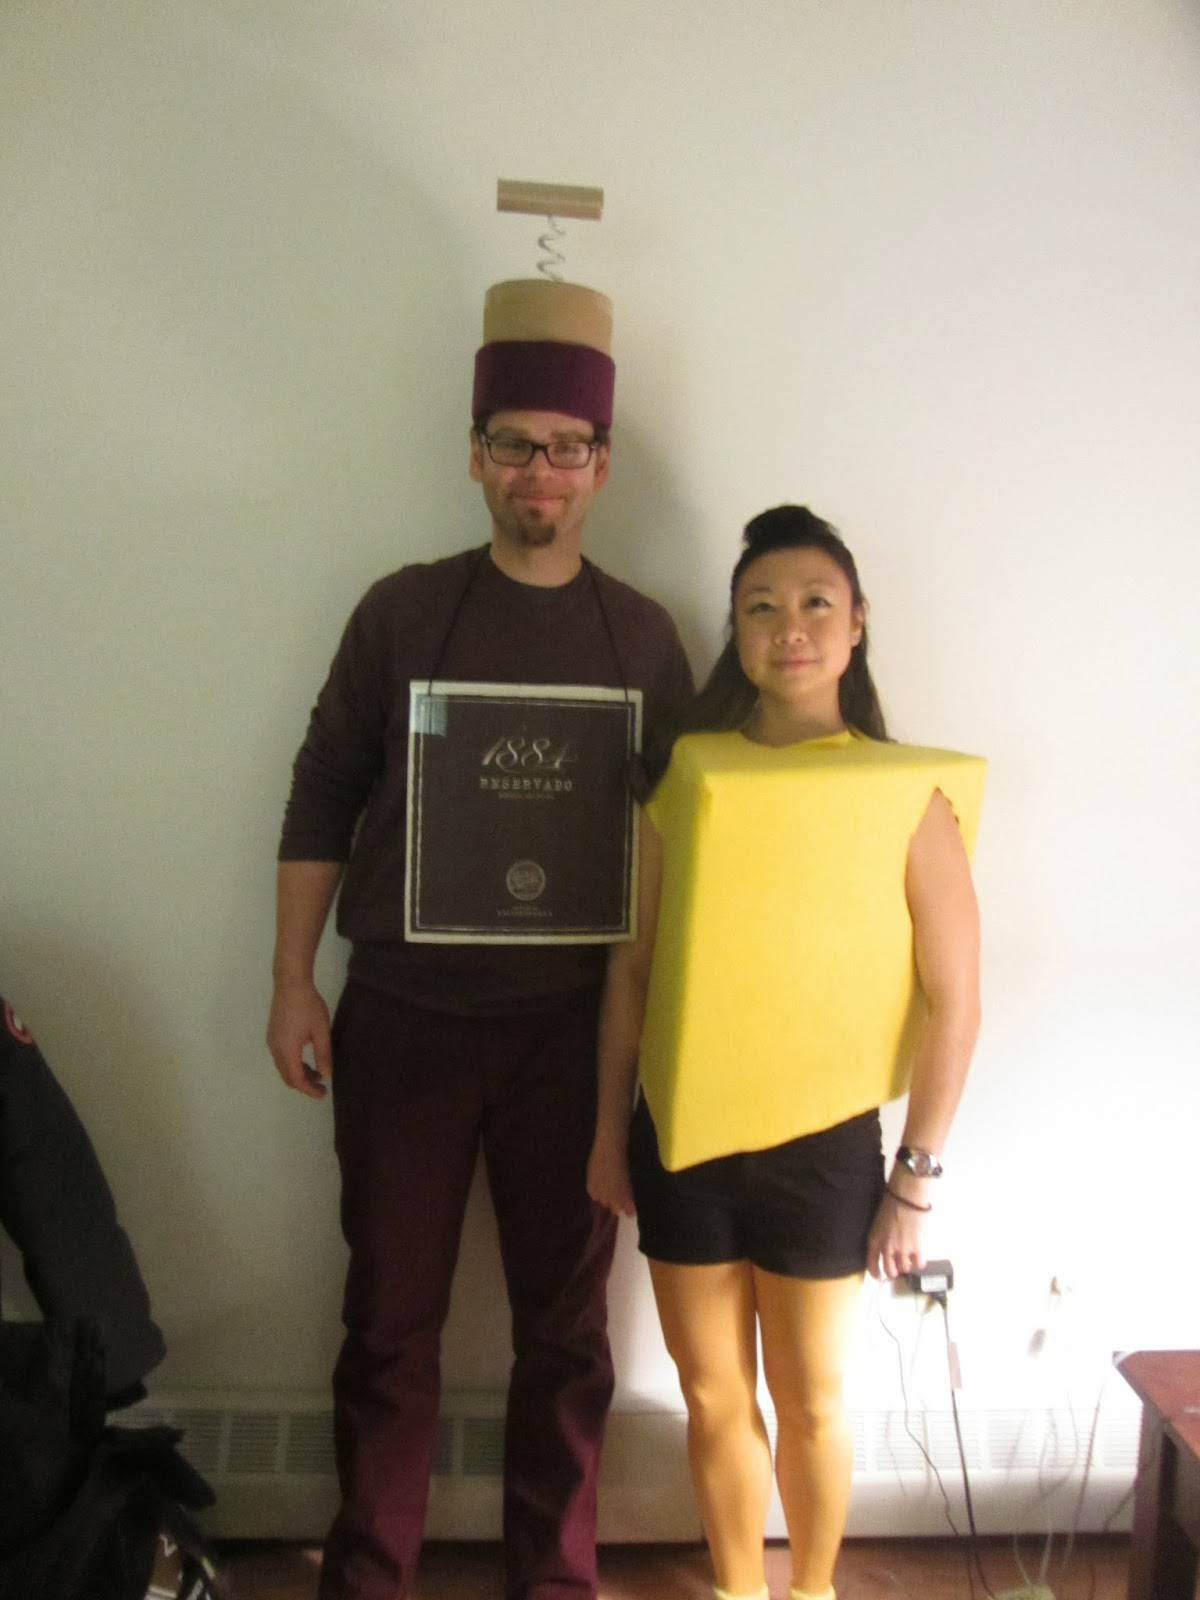 our wine and cheese halloween costume which would not have fit over snow pants